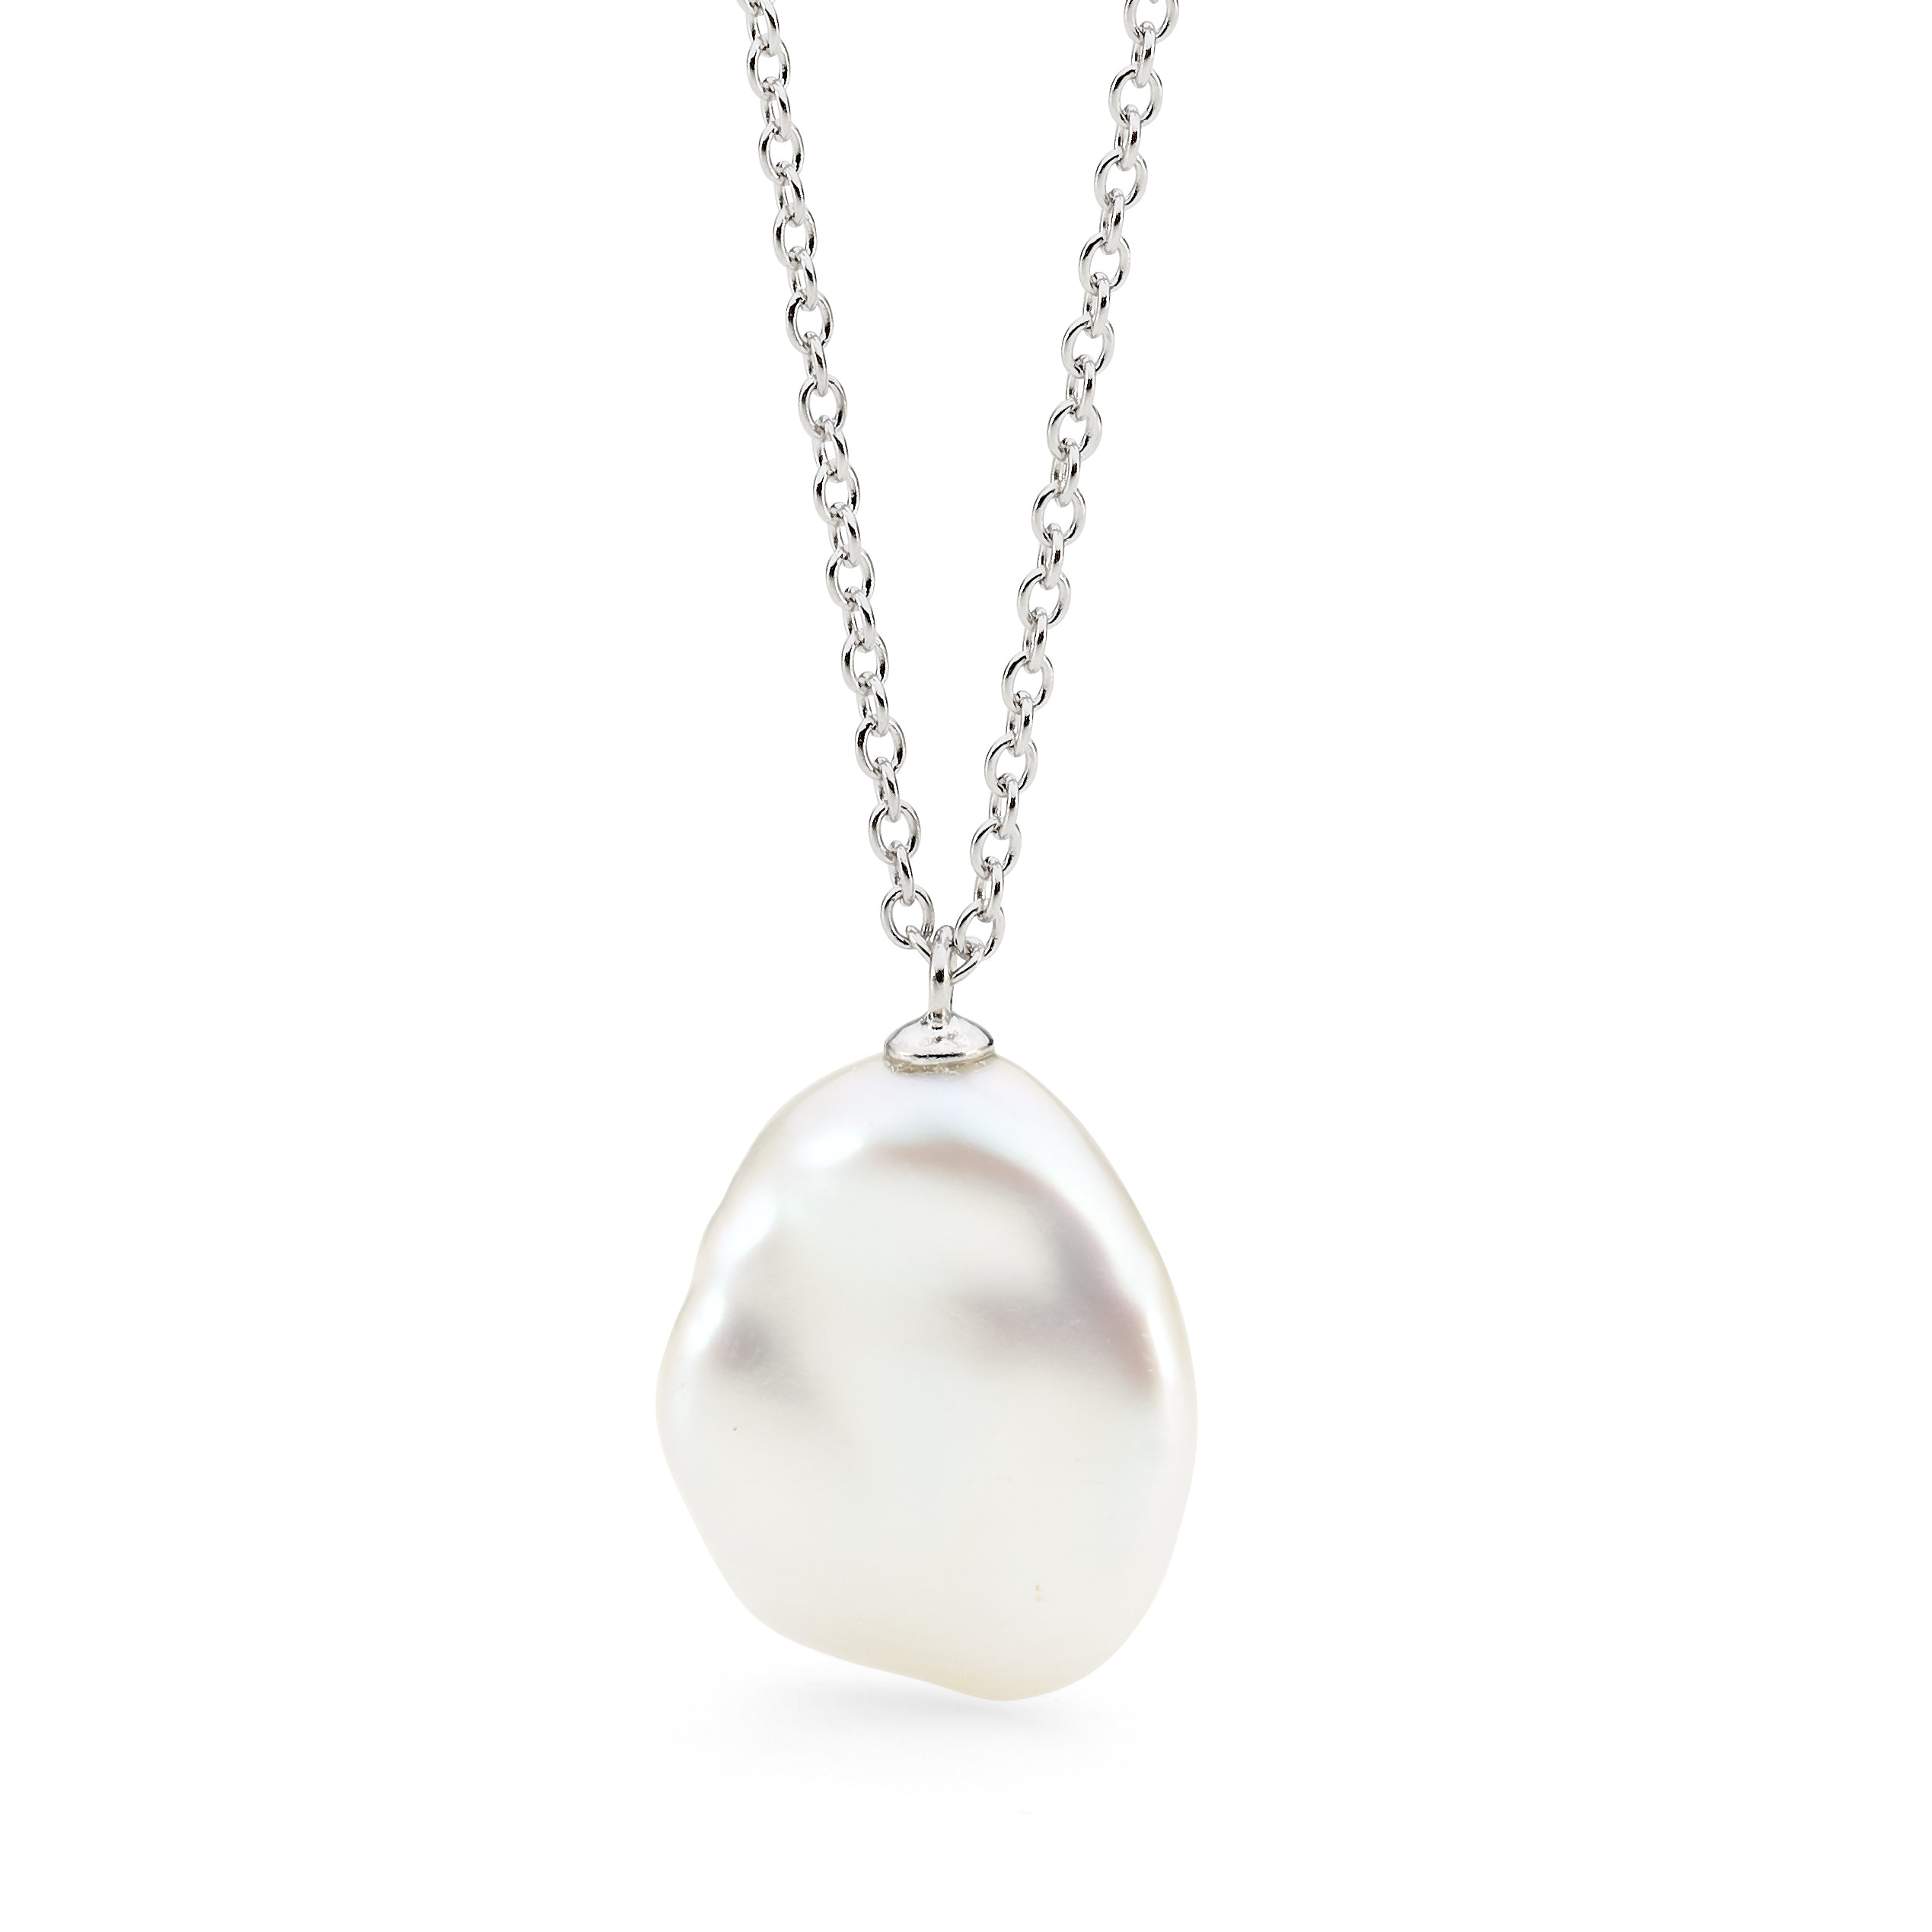 STERLING SILVER WHITE KESHI FRESHWATER PEARL NECKLACE